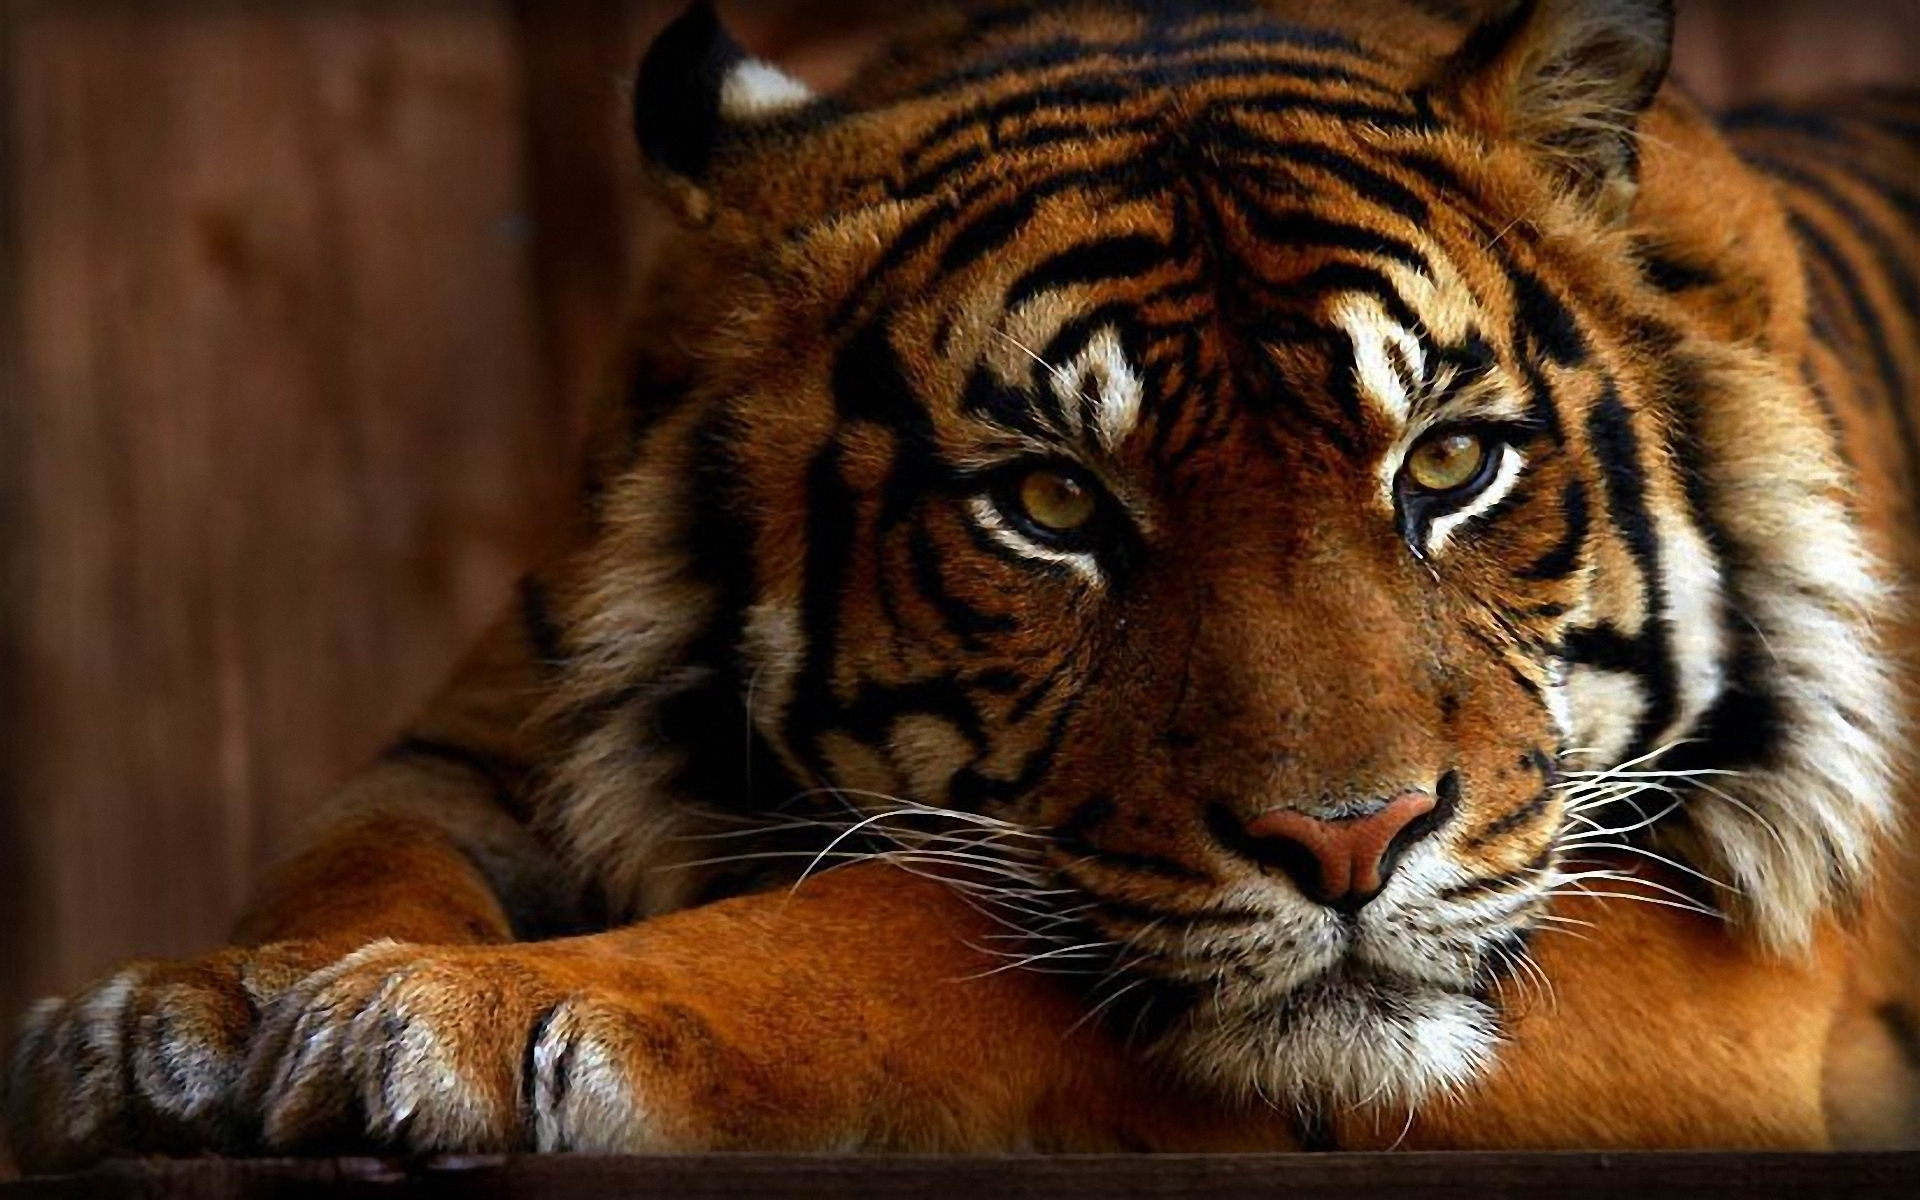 Wallpapers Of Tigers And Lions